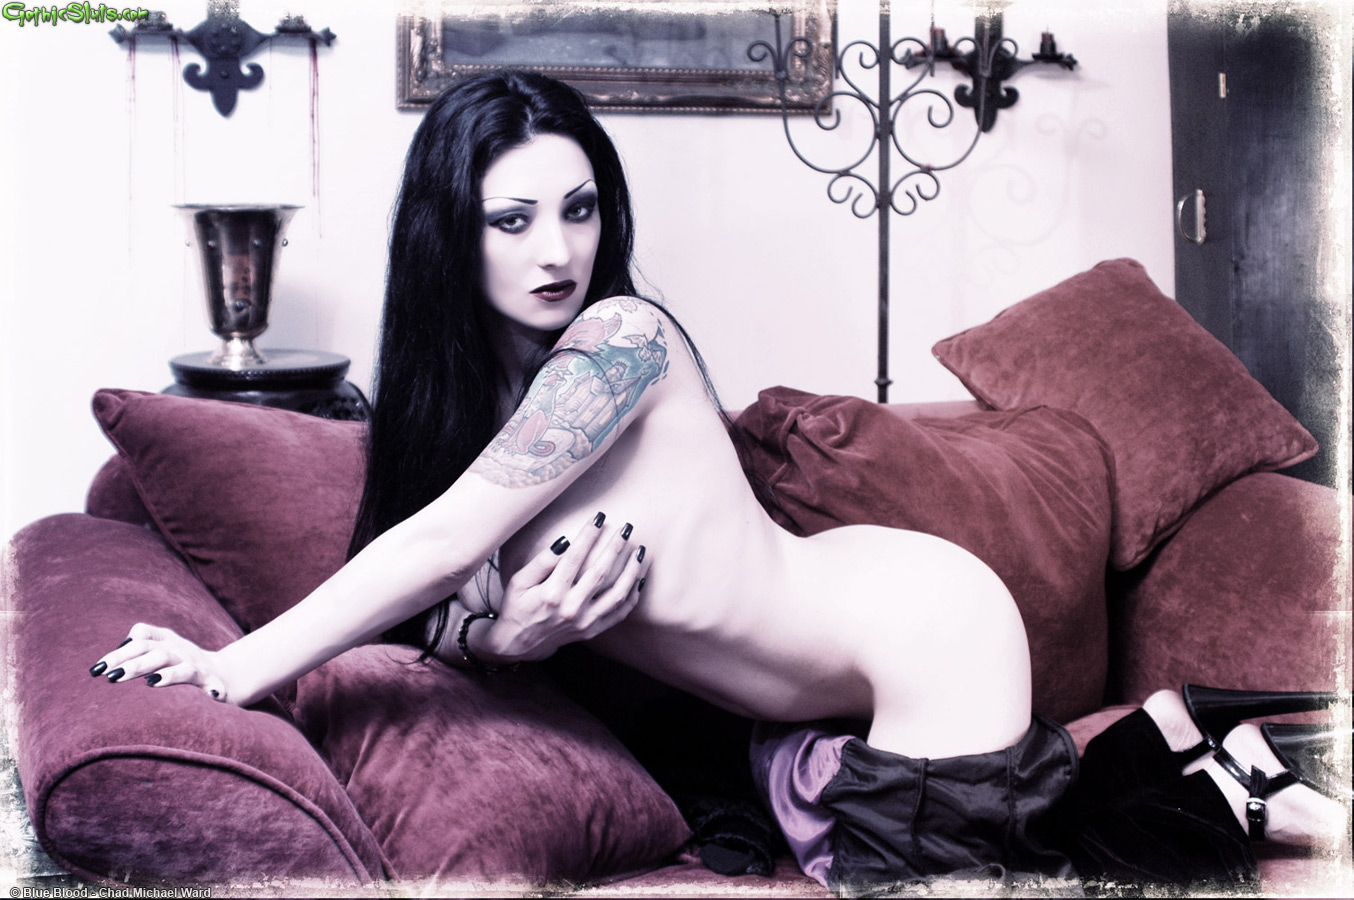 how much do male porn stars make #DomianaDemonica aka #Domiana #BlueBlood #GothicSluts #goth #gothic #pale #dark #tattoos #heels #semiclothed #lookingatcamera #couch #velvet